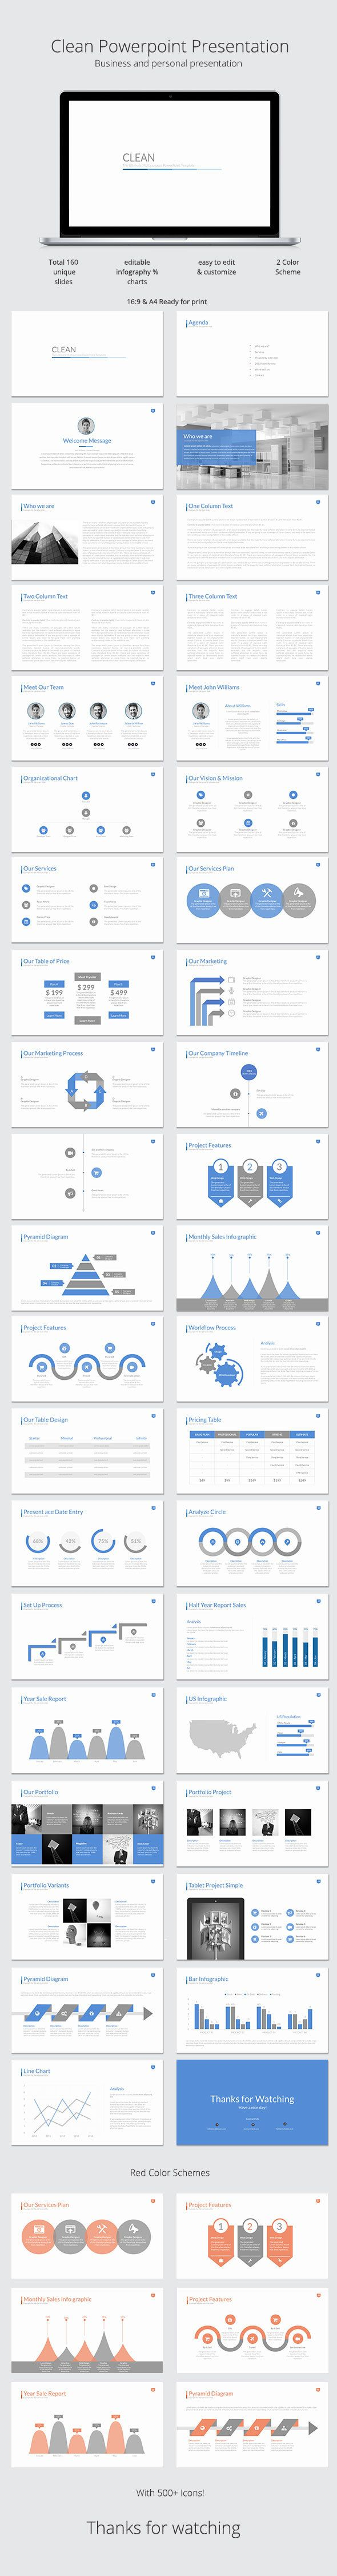 Coolmathgamesus  Terrific  Ideas About Powerpoint Presentations On Pinterest With Lovable Clean Powerpoint Template With Easy On The Eye Powerpoint Add Ins Mac Also Sound Effects For Powerpoint Presentation In Addition Simple Powerpoint Presentations And Slips Trips Falls Powerpoint As Well As Powerpoint Design Slide Additionally Powerpoint To Video Online Converter From Pinterestcom With Coolmathgamesus  Lovable  Ideas About Powerpoint Presentations On Pinterest With Easy On The Eye Clean Powerpoint Template And Terrific Powerpoint Add Ins Mac Also Sound Effects For Powerpoint Presentation In Addition Simple Powerpoint Presentations From Pinterestcom